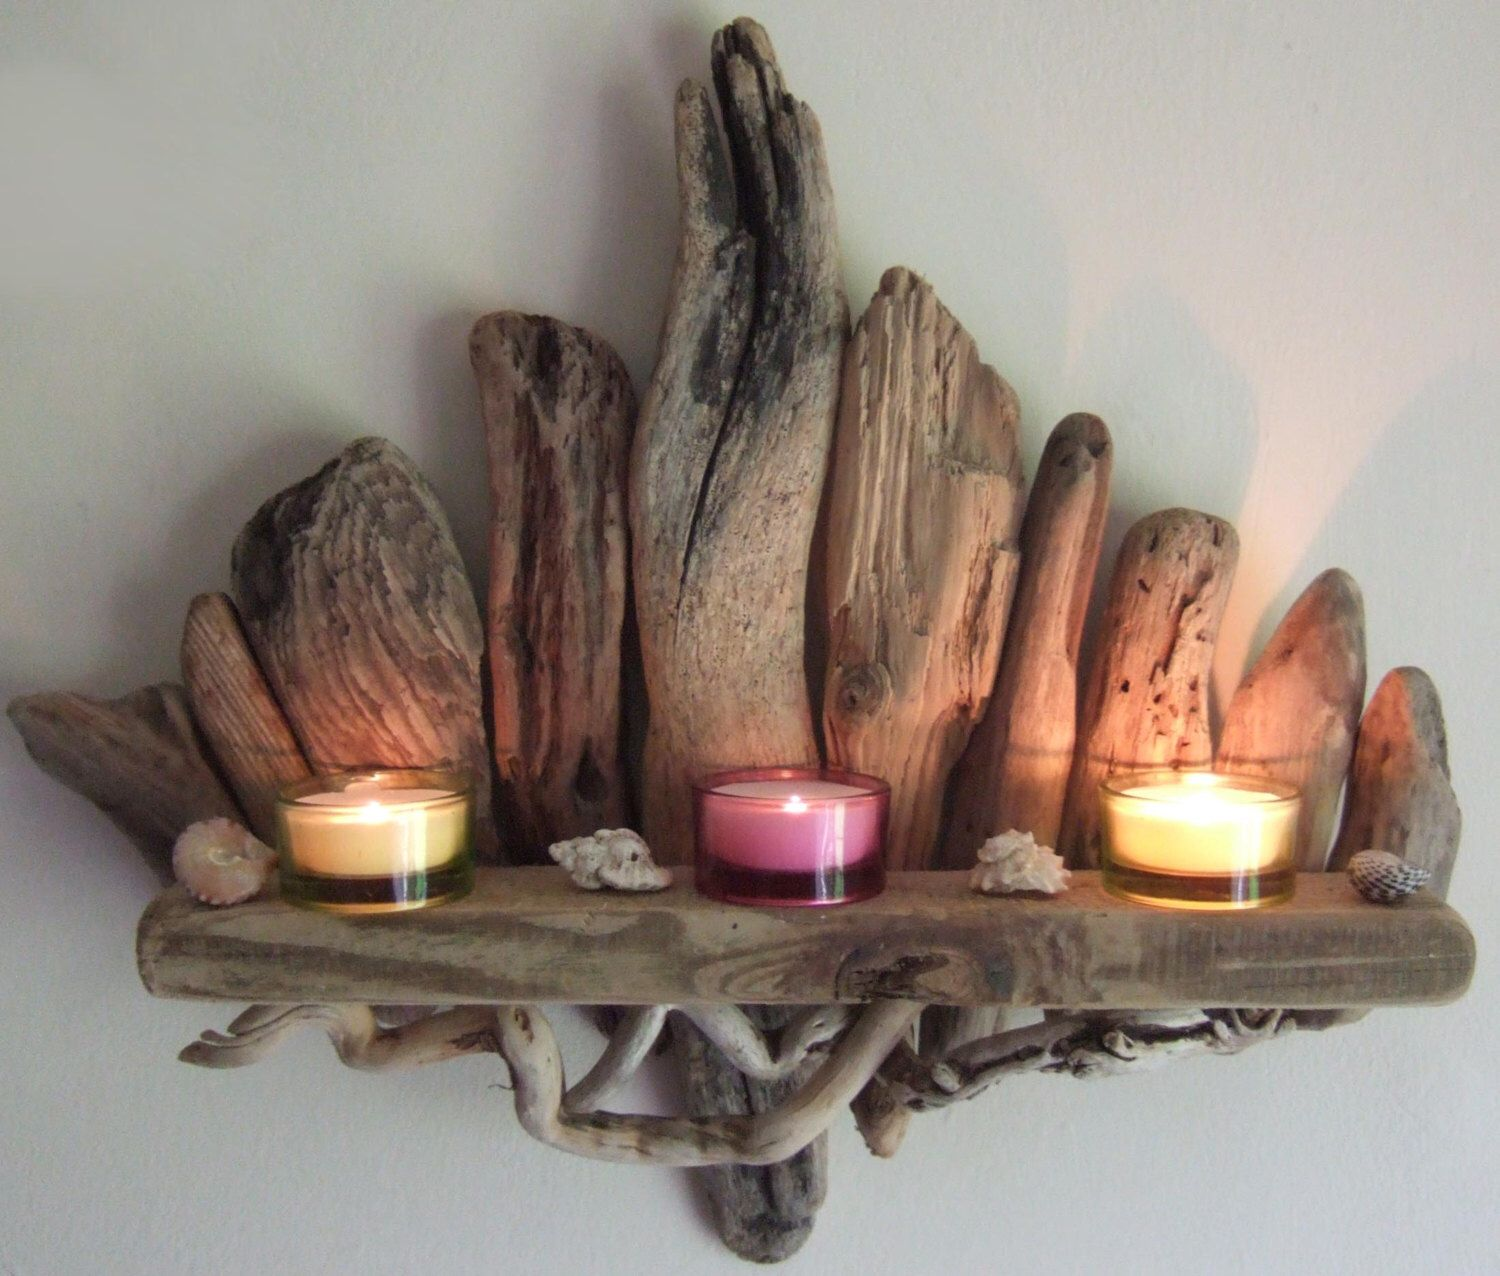 SOLD***Beautiful Driftwood Shelf Candle Sconce By Devon